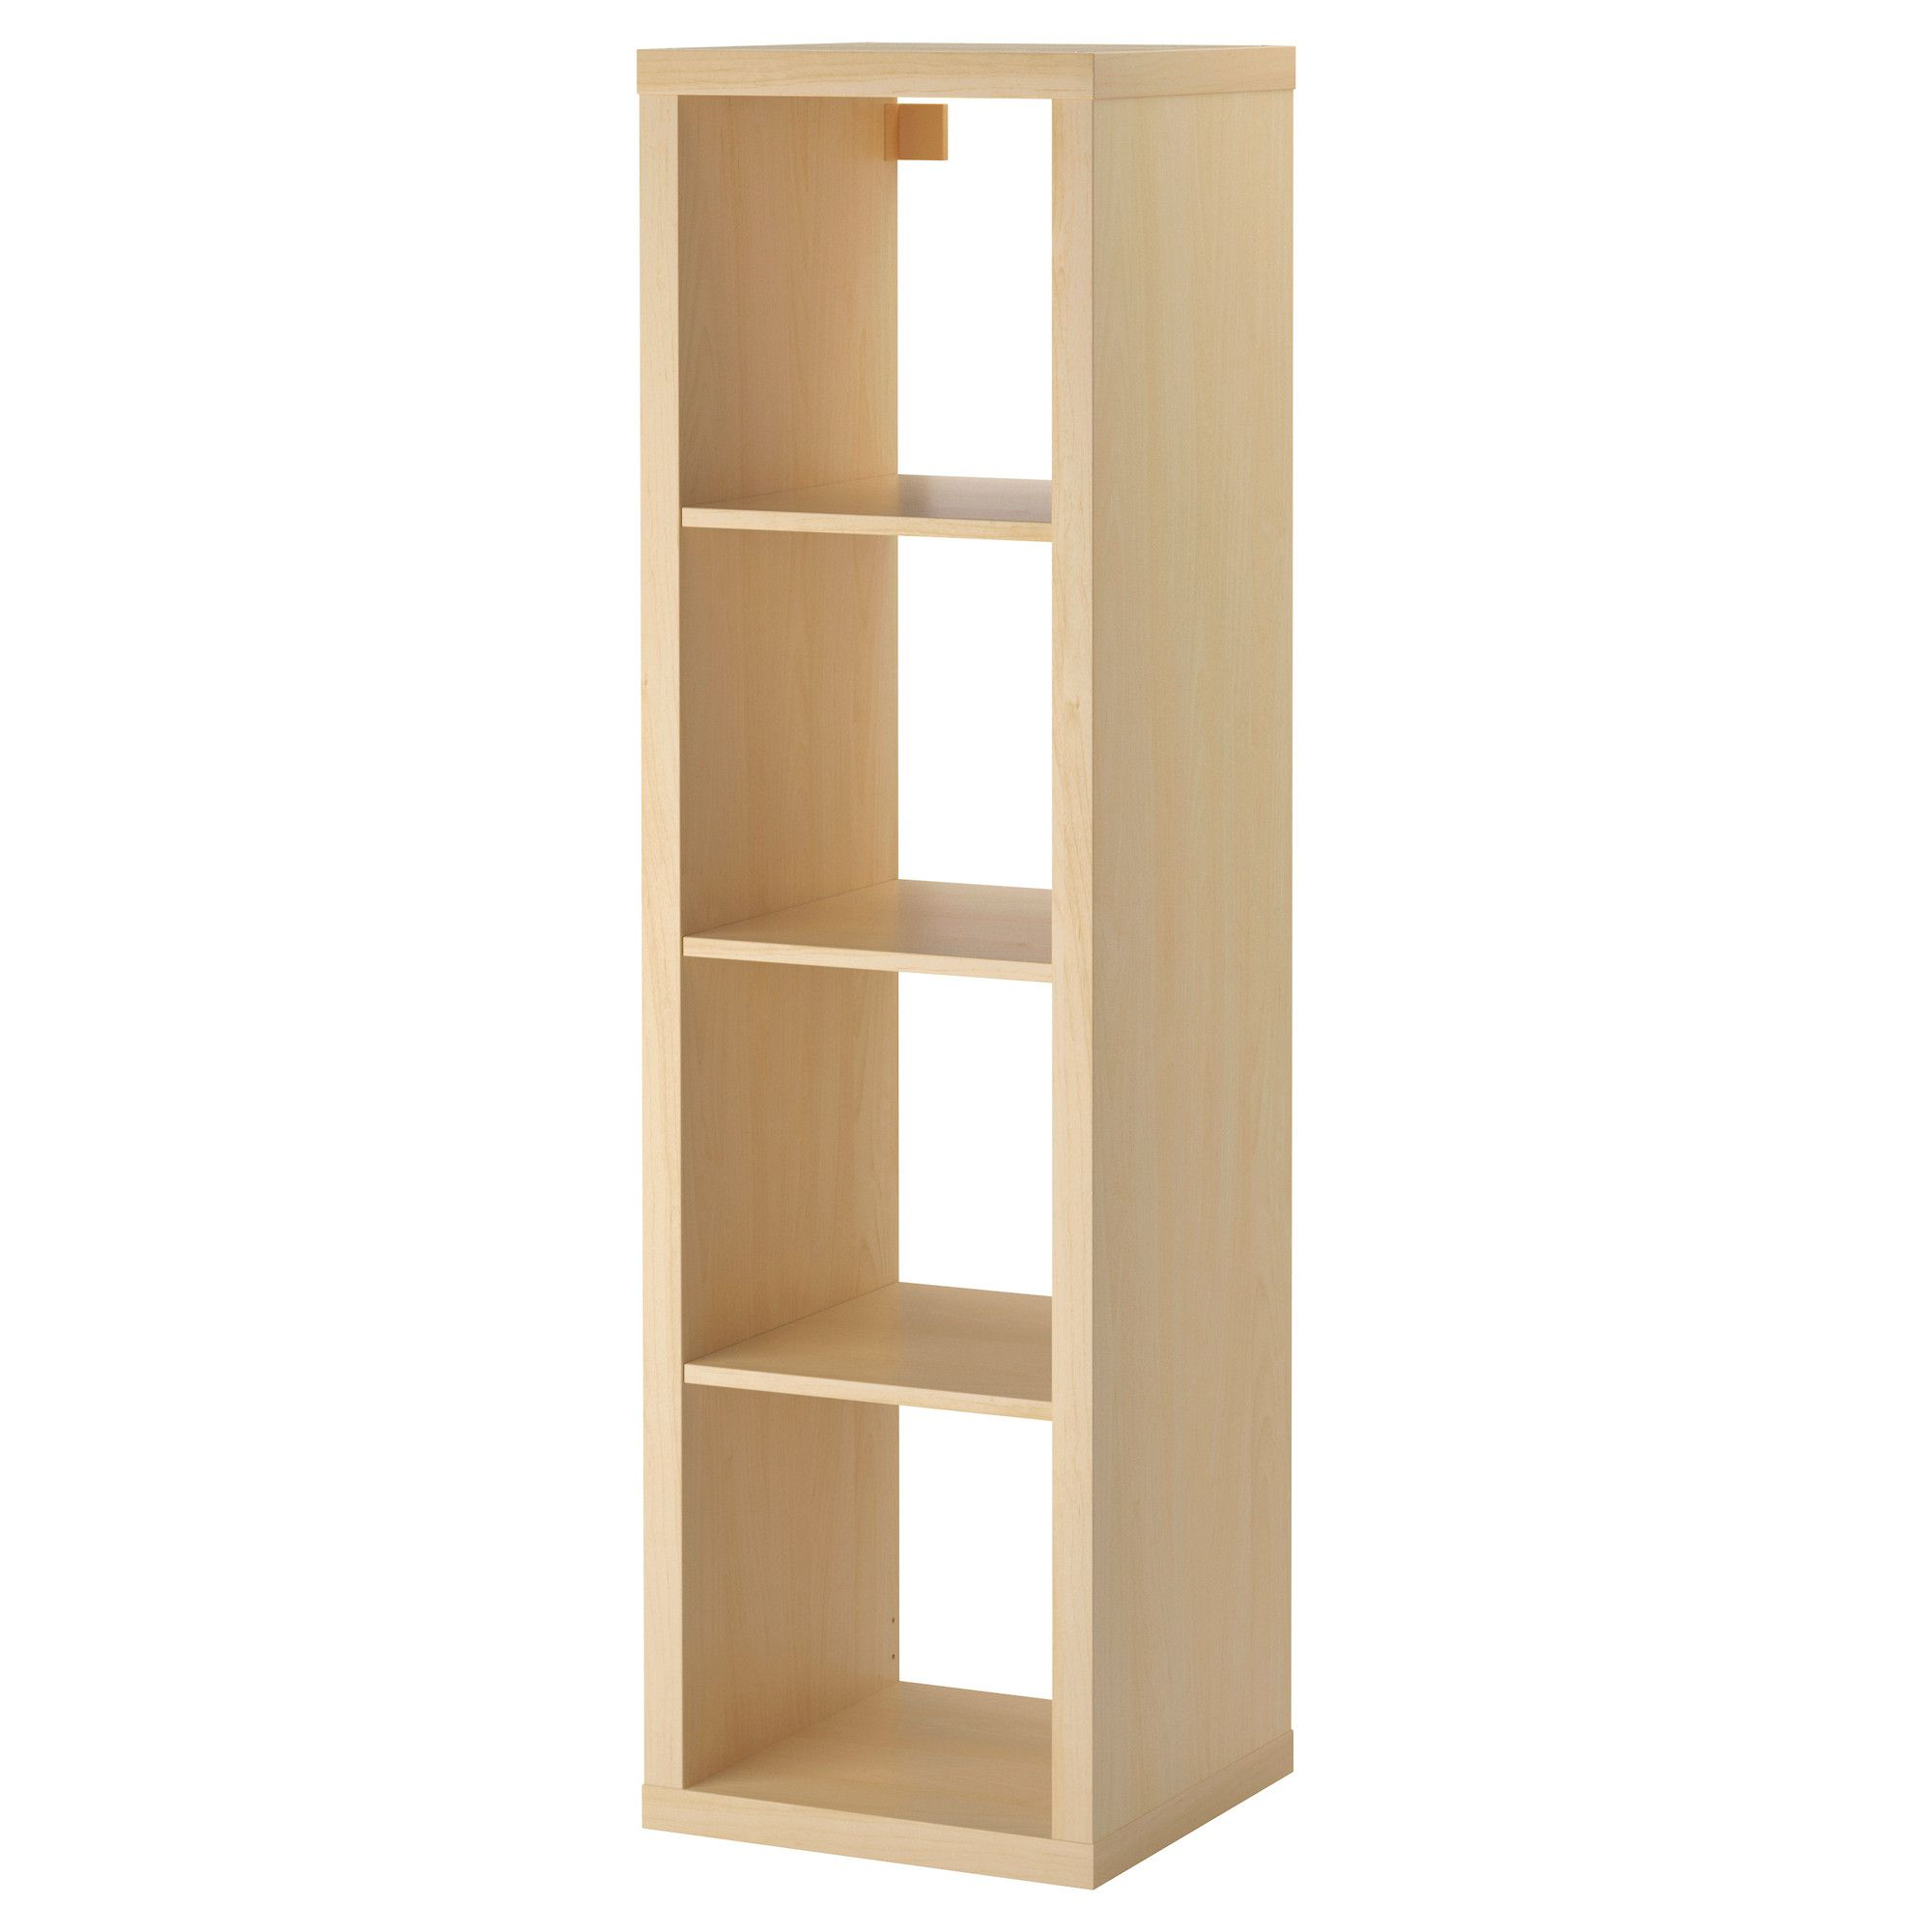 bathroom units shelf capacity shelving organization supreme ttw product tier description dp com amazon langria